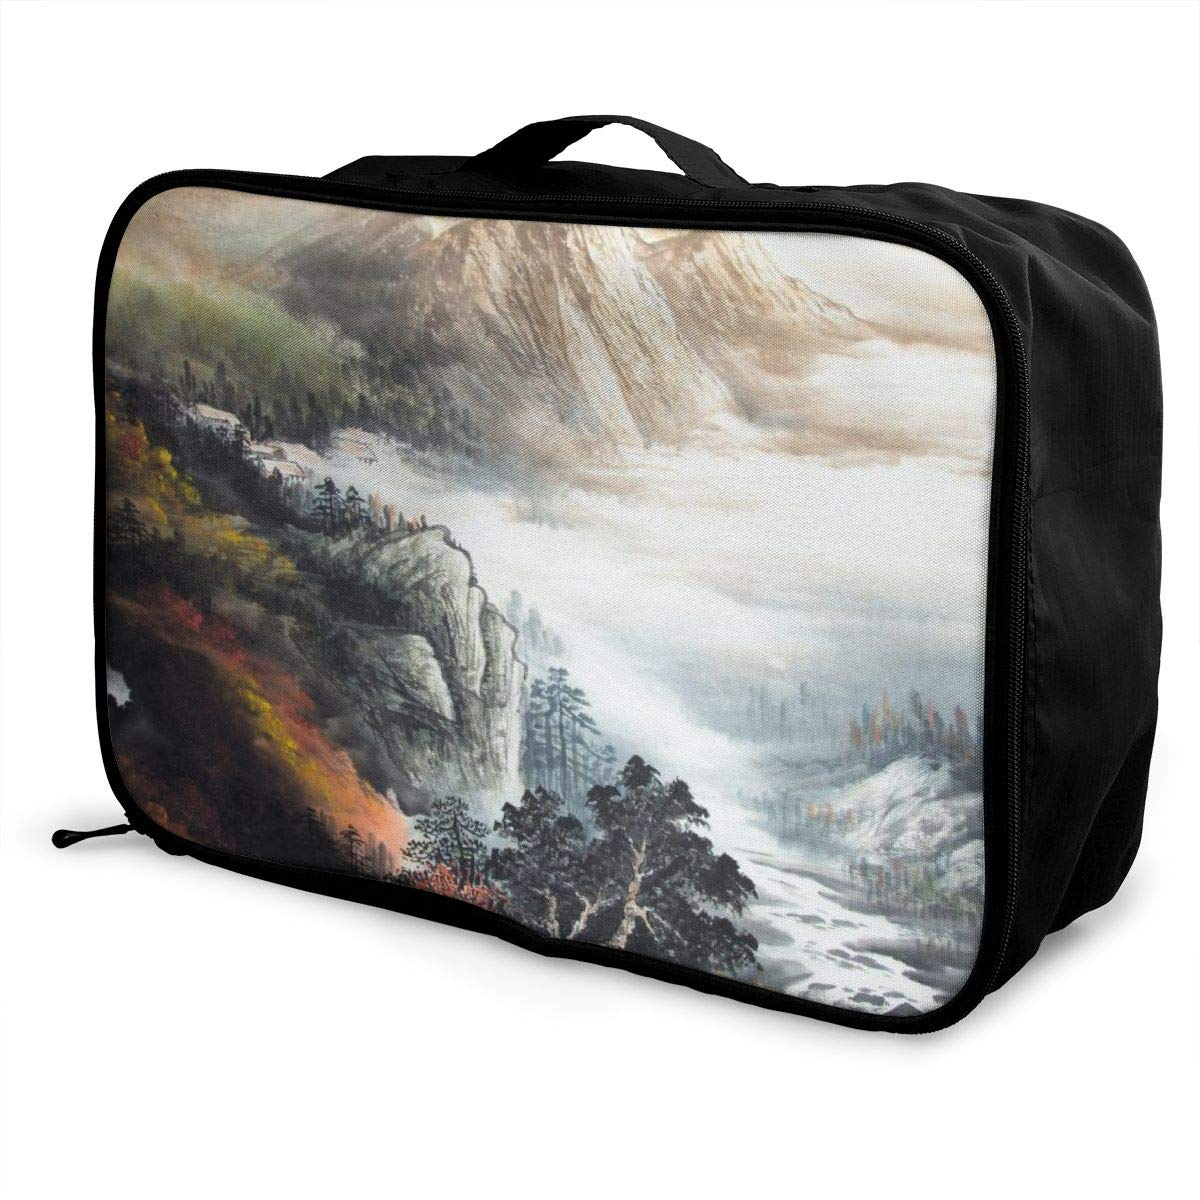 Chinoiserie Sunset Over Mountains With Waterfall Travel Lightweight Waterproof Folding Storage Portable Luggage Duffle Tote Bag Large Capacity In Trolley Handle Bags 6x11x15 Inch